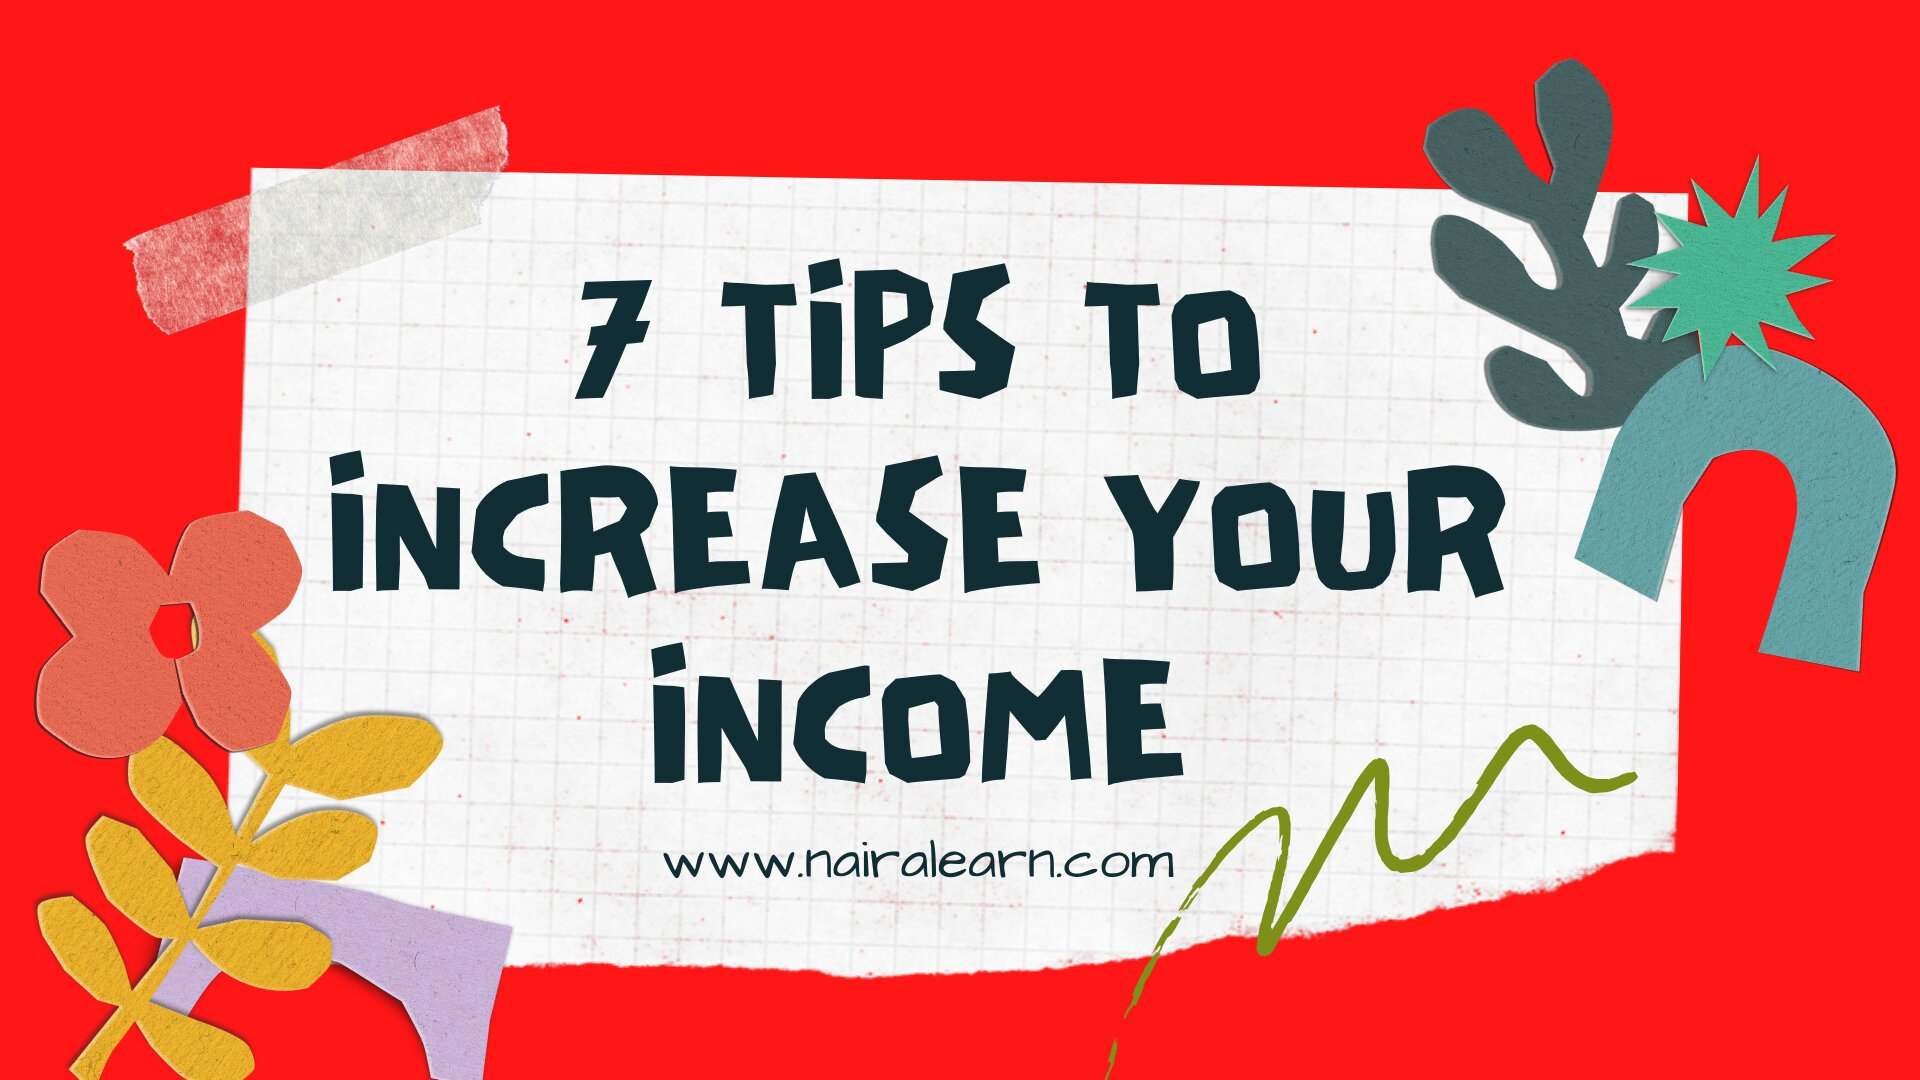 7 Tips To Increase Your Income